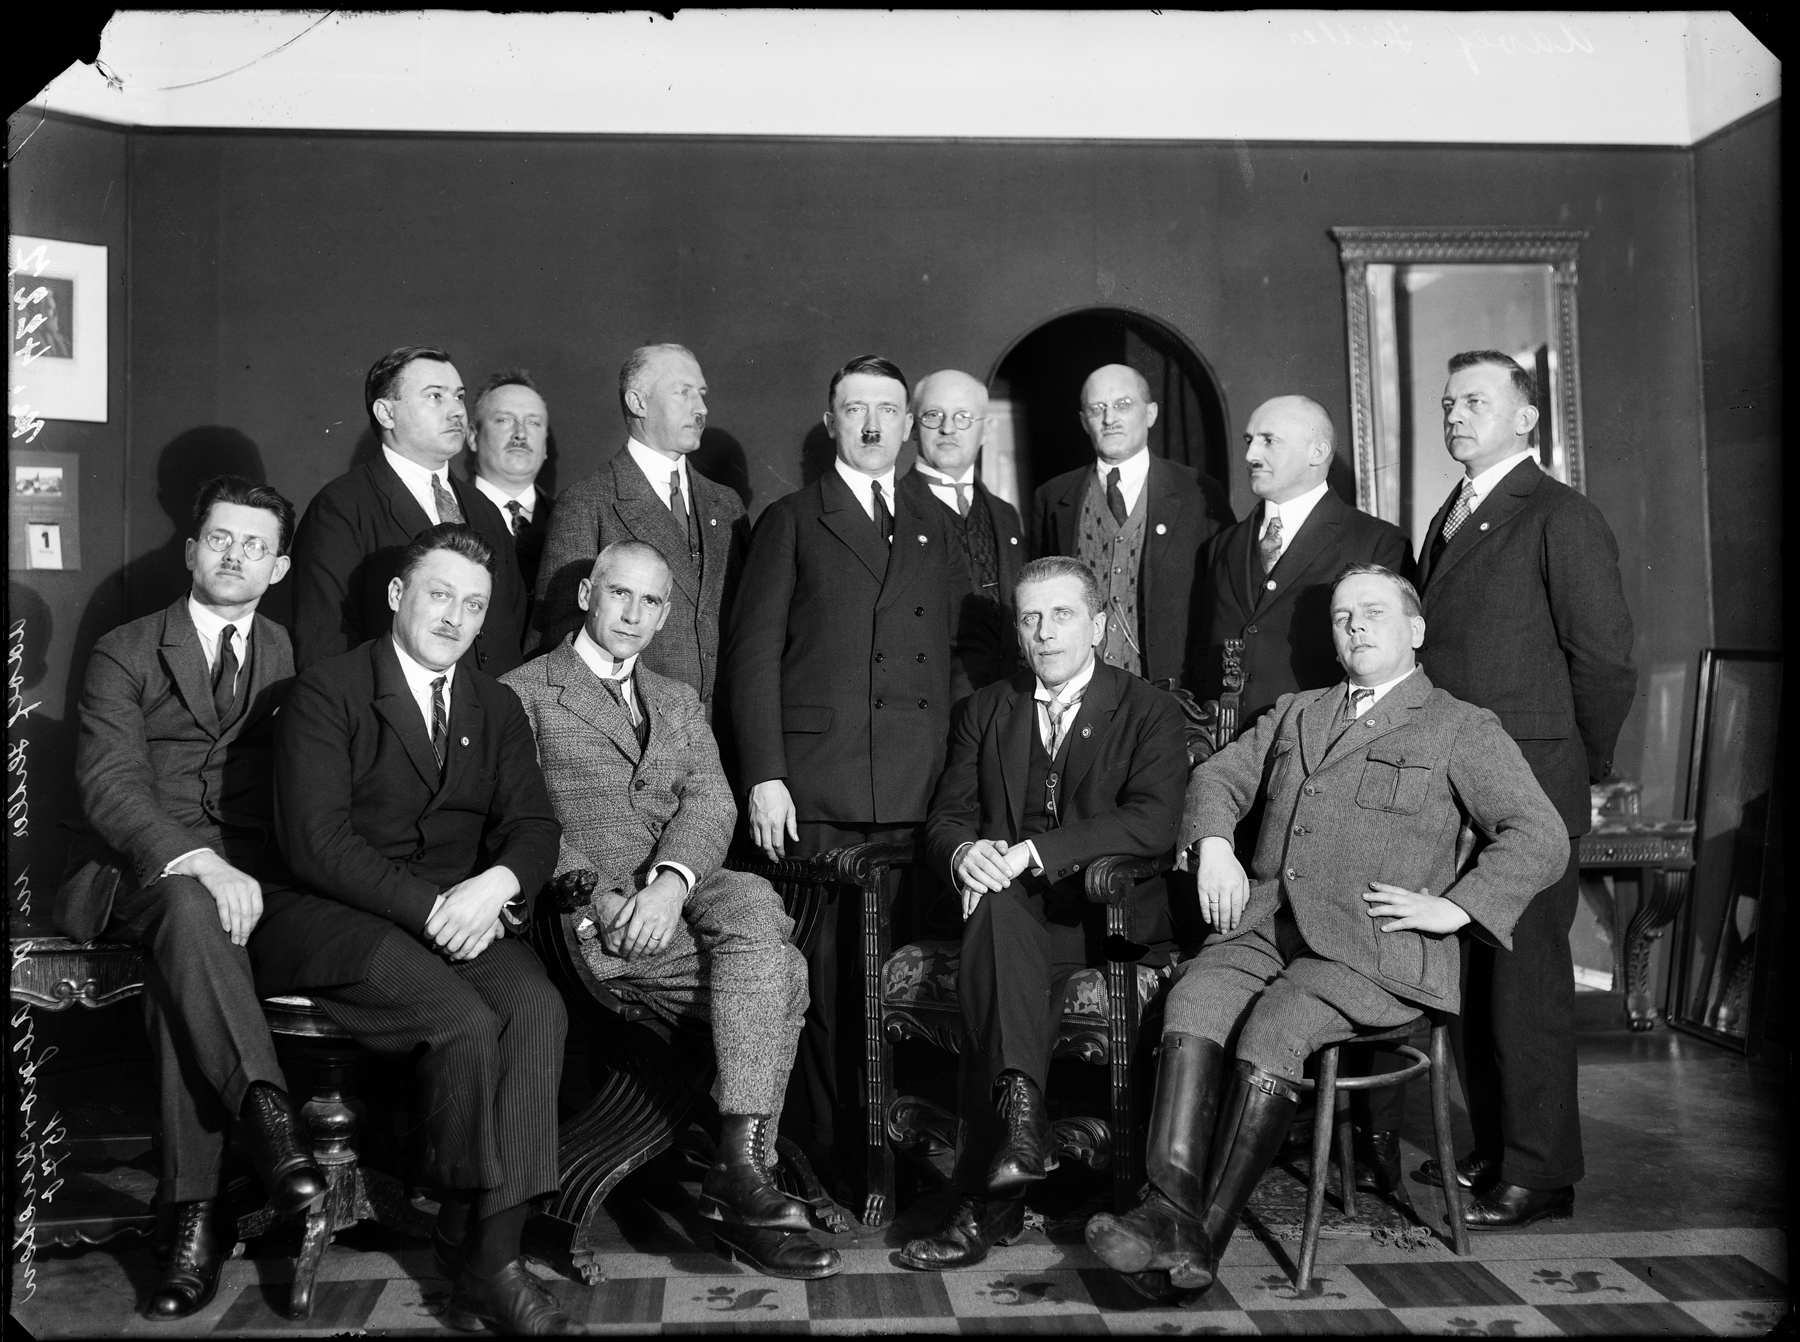 Adolf Hitler and party members pose in Heinrich Hoffmann's studio in Munich (Heinrich Hoffmann photo)